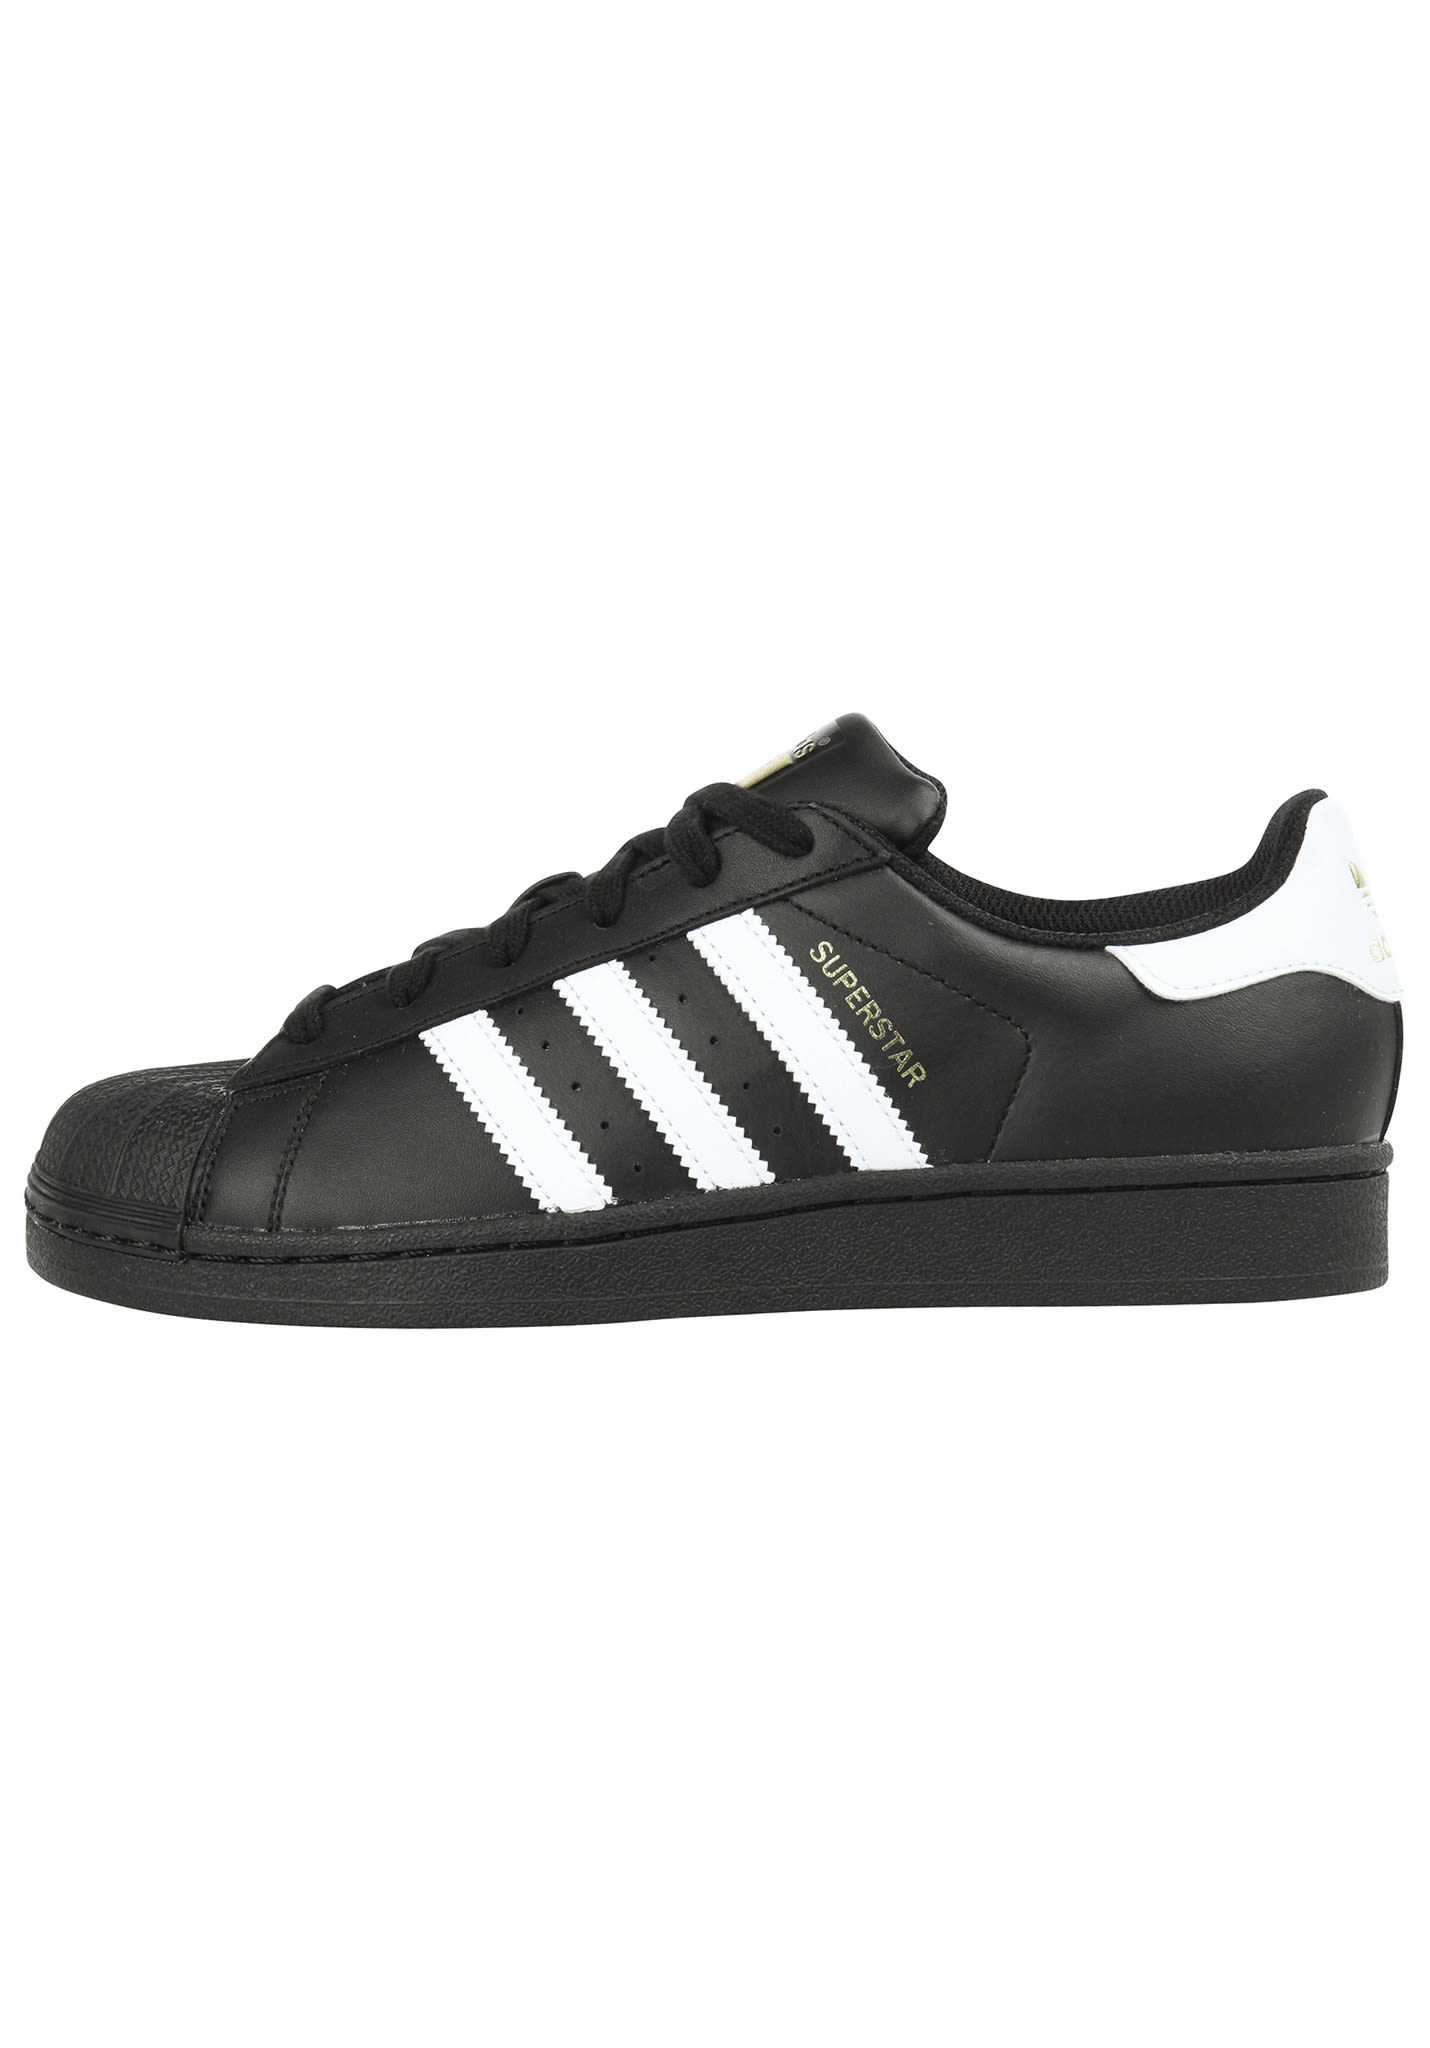 Adidas Superstar Schwarz Billig autorenforum